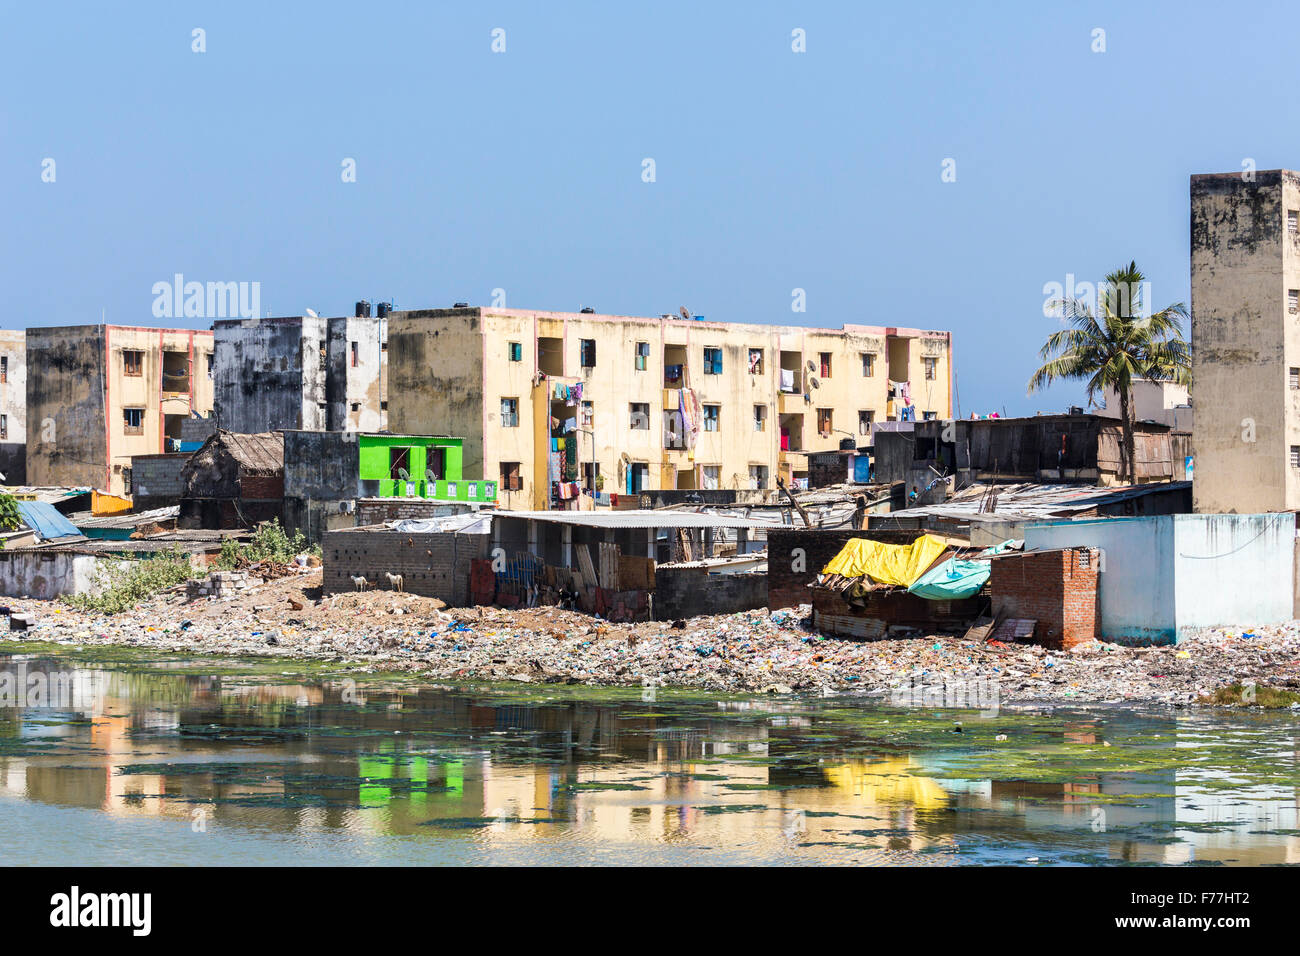 Third world poverty lifestyle: poor slums, apartment blocks on the banks of the polluted Adyar River estuary in - Stock Image